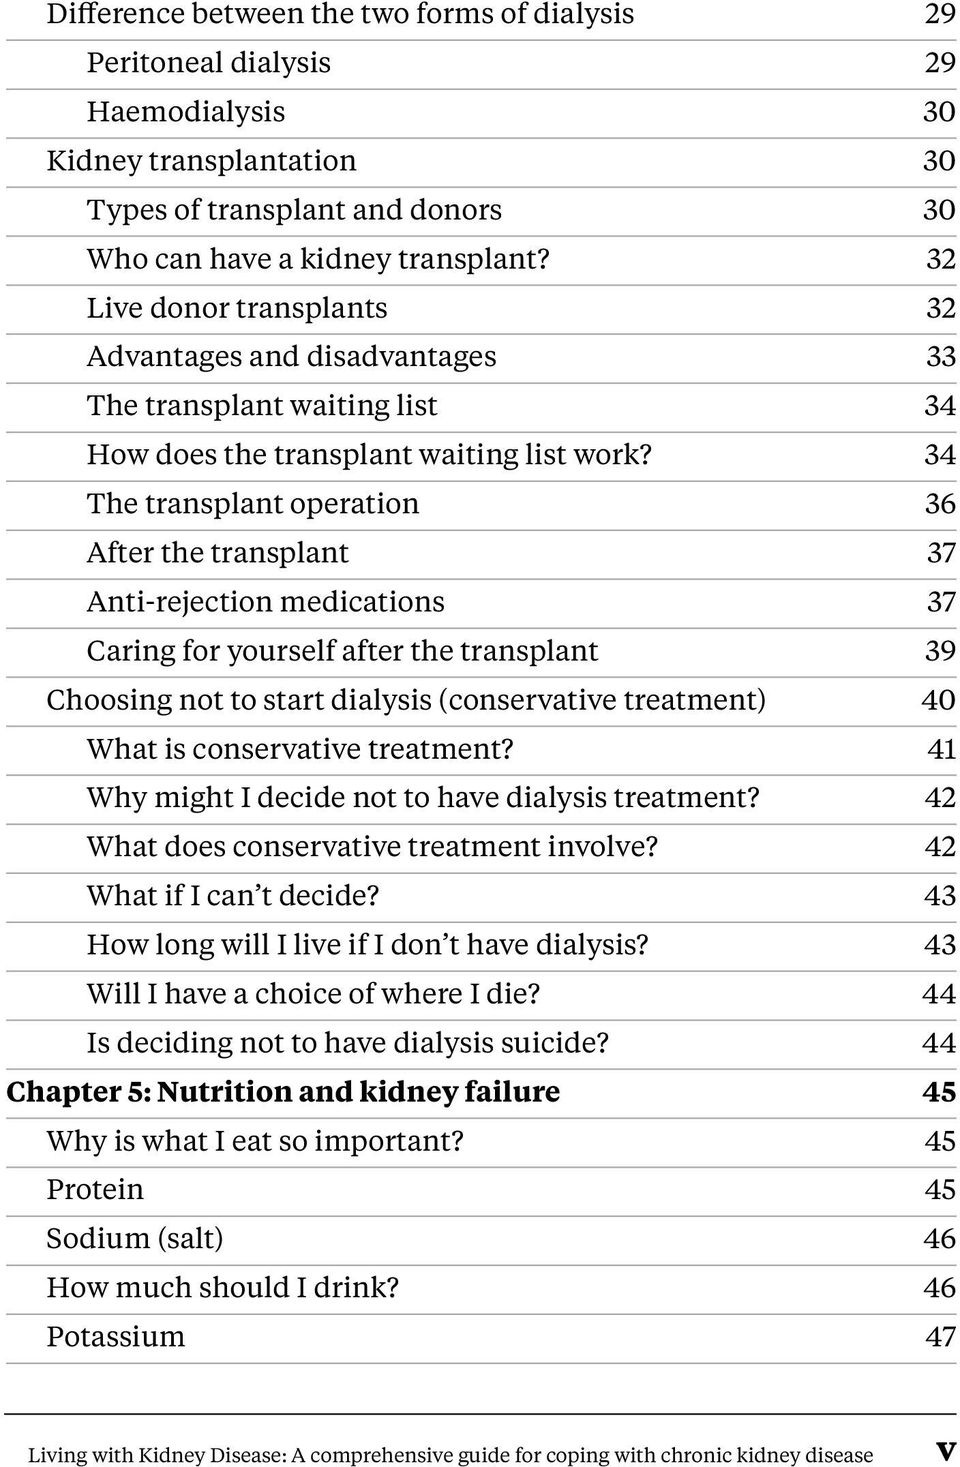 34 The transplant operation 36 After the transplant 37 Anti-rejection medications 37 Caring for yourself after the transplant 39 Choosing not to start dialysis (conservative treatment) 40 What is